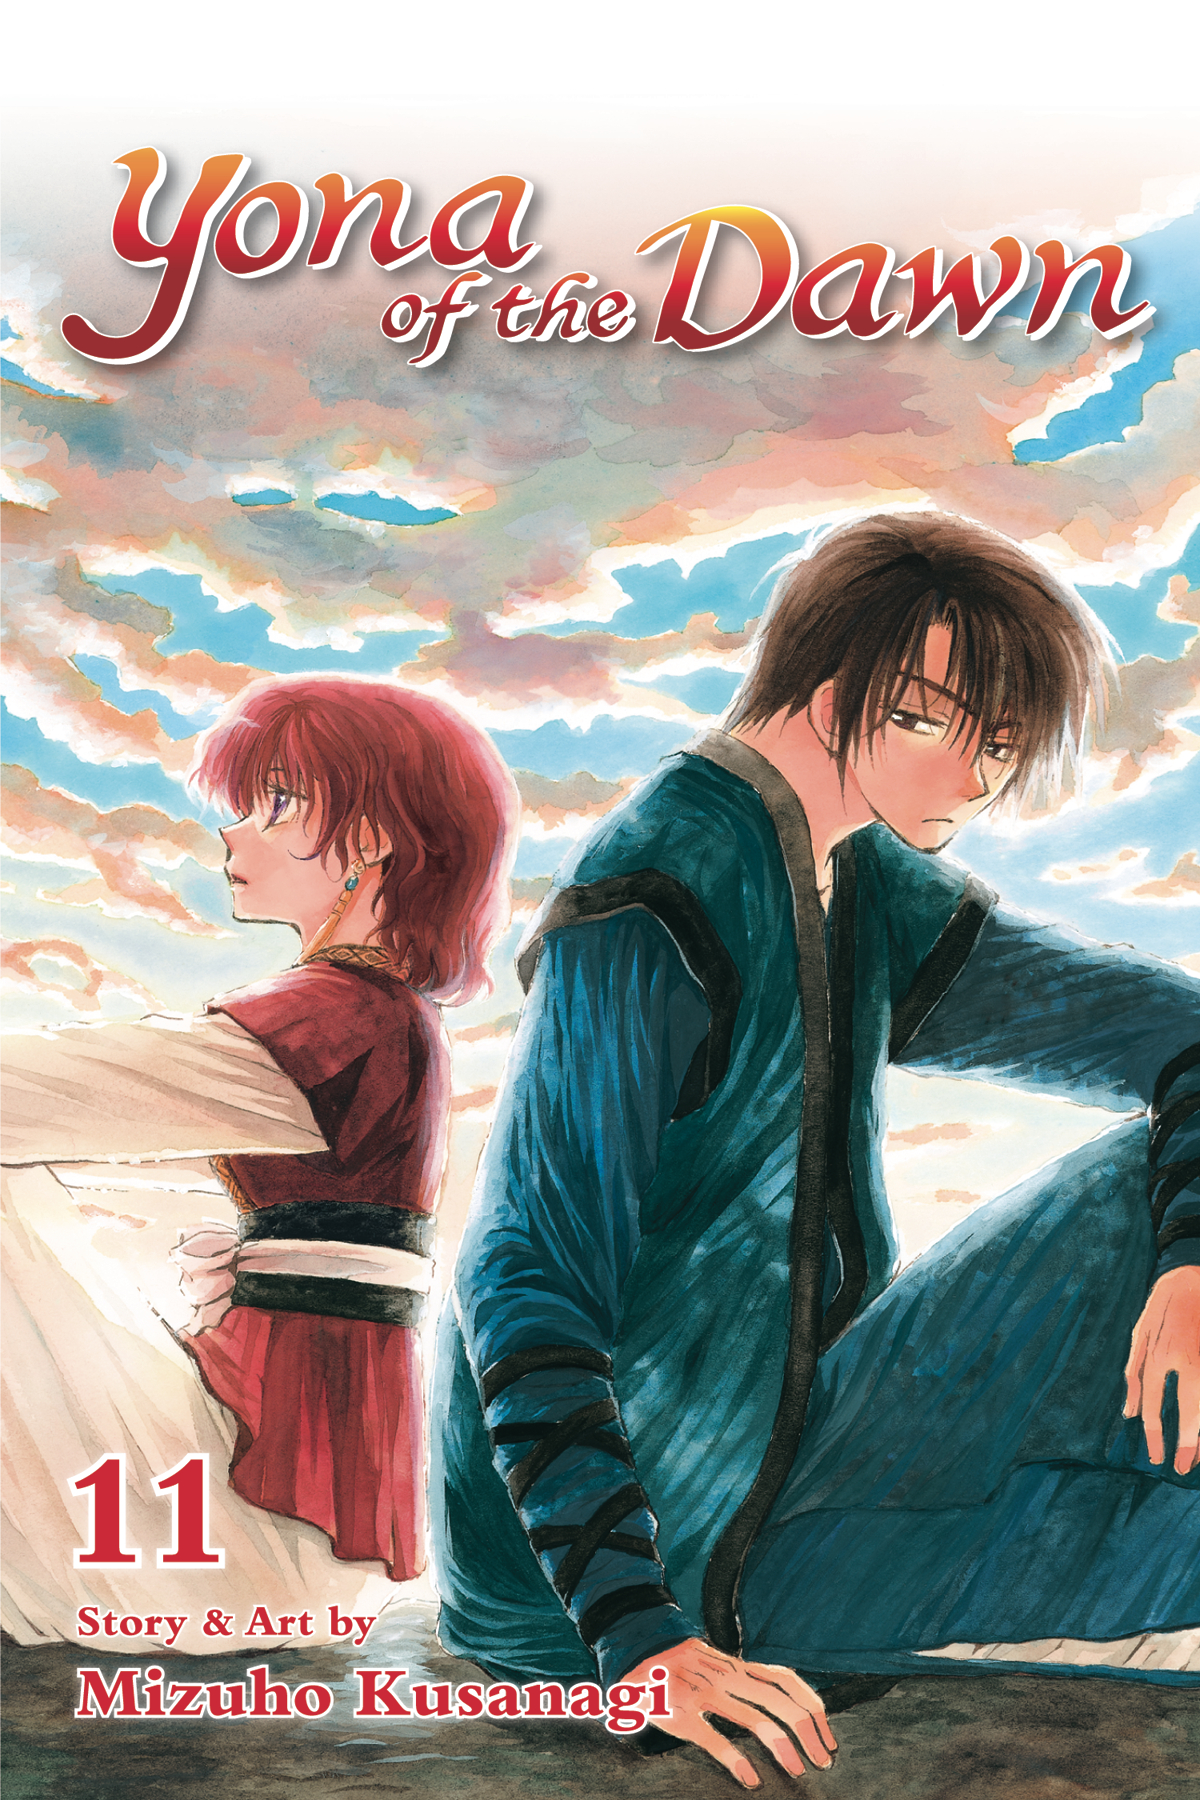 YONA OF THE DAWN GN VOL 11